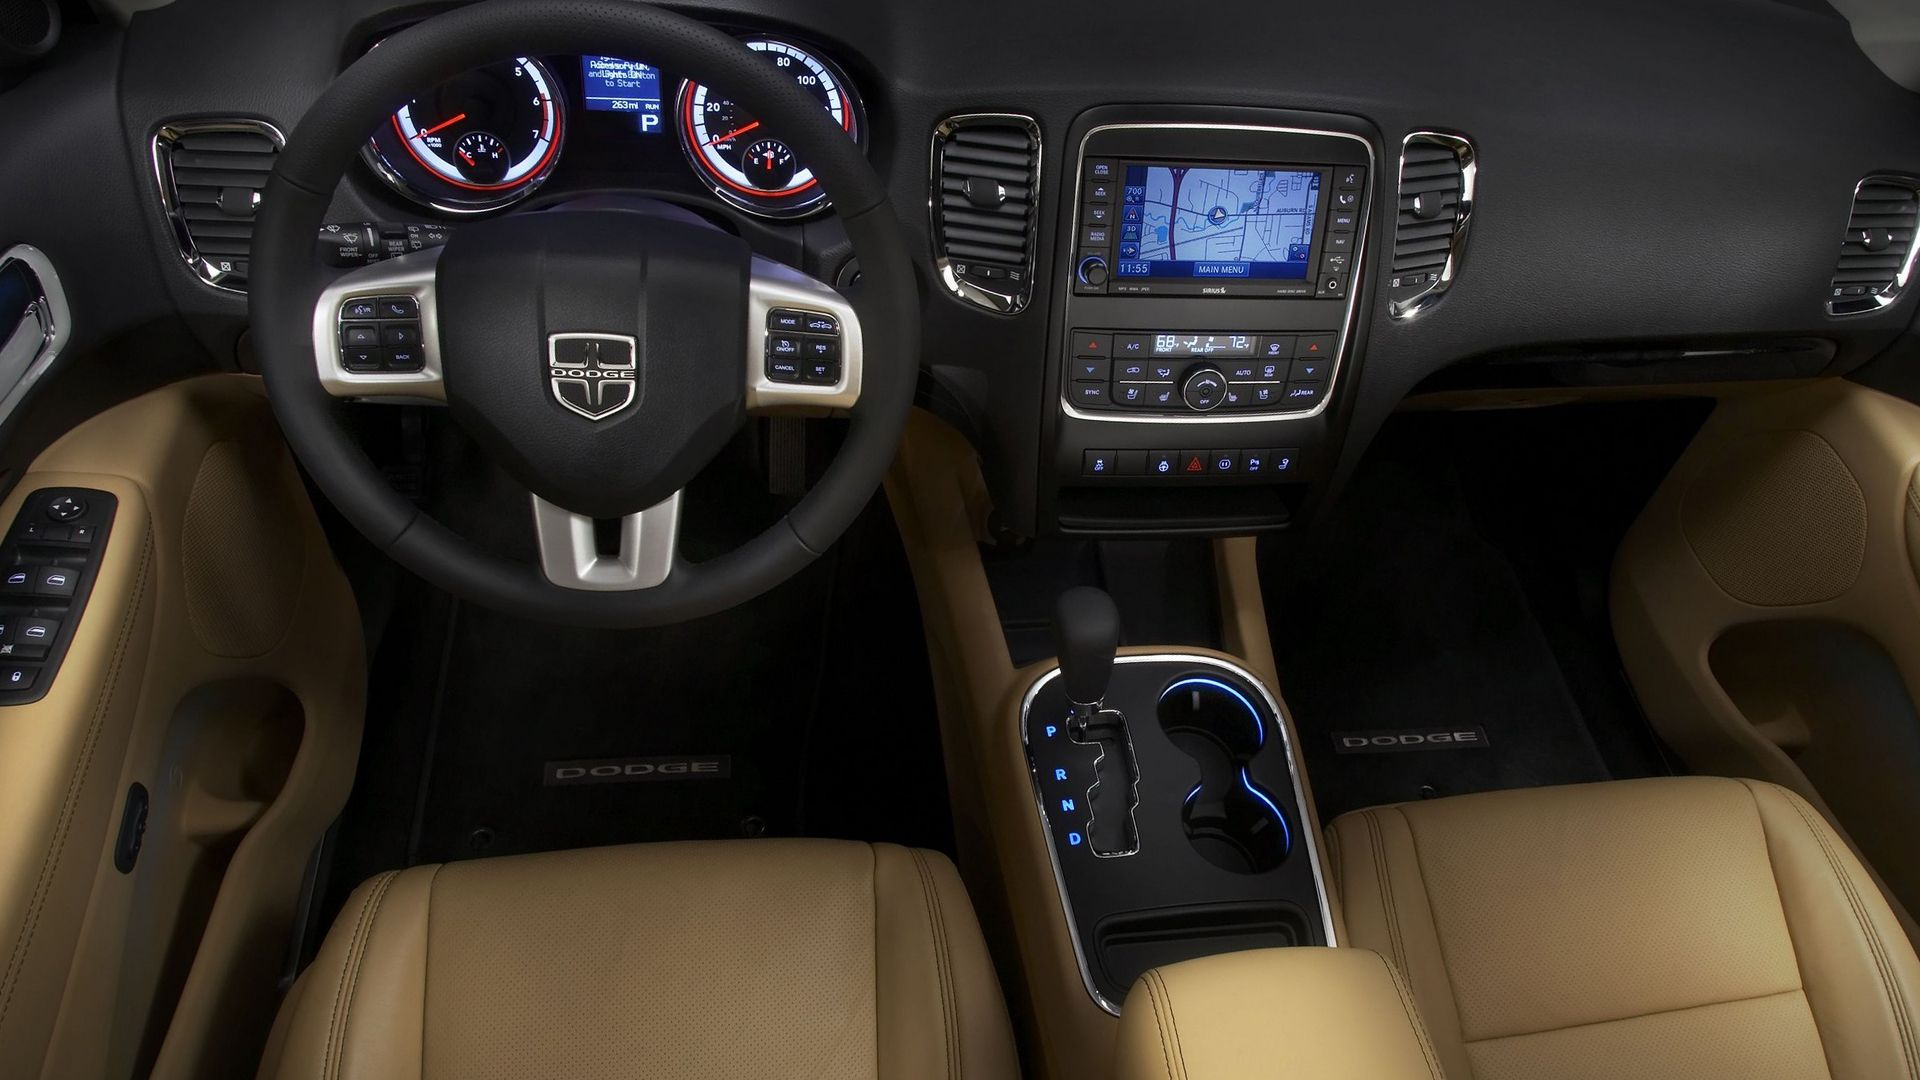 Marvelous New 2019 Dodge Durango Interior Design Dodge Durango Interior, Old Cars,  Rolling Carts